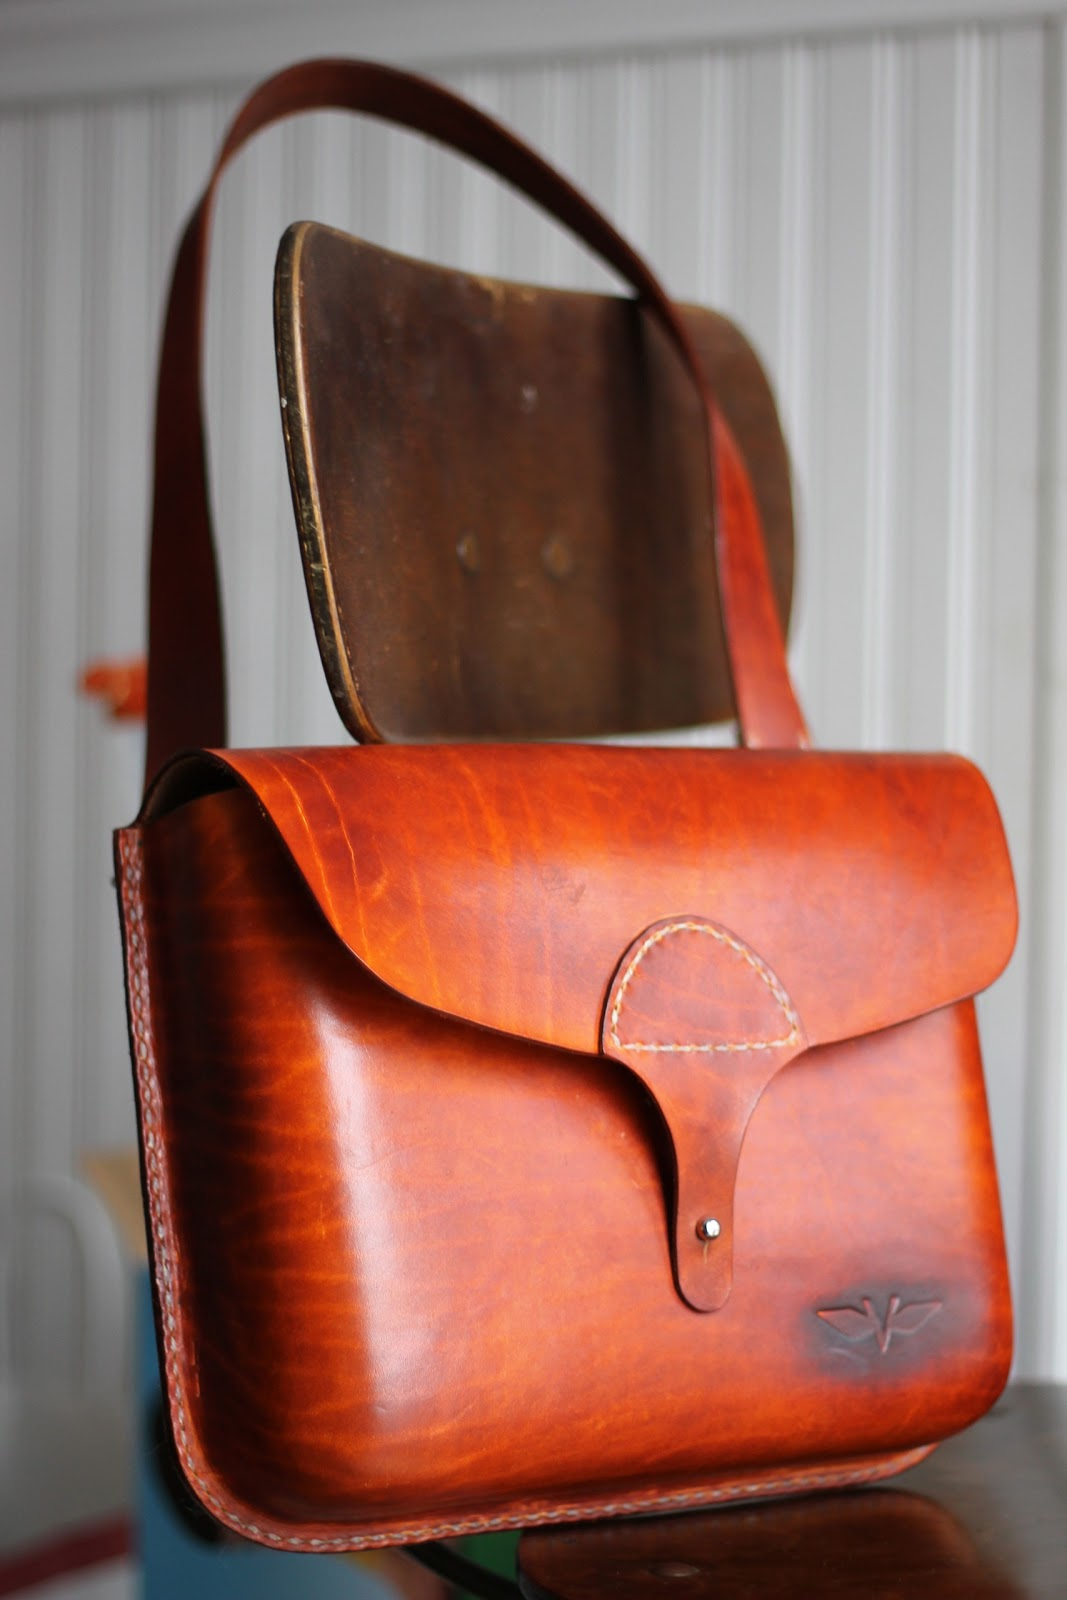 VanHook & Co.: Hand Stitched Leather Bag